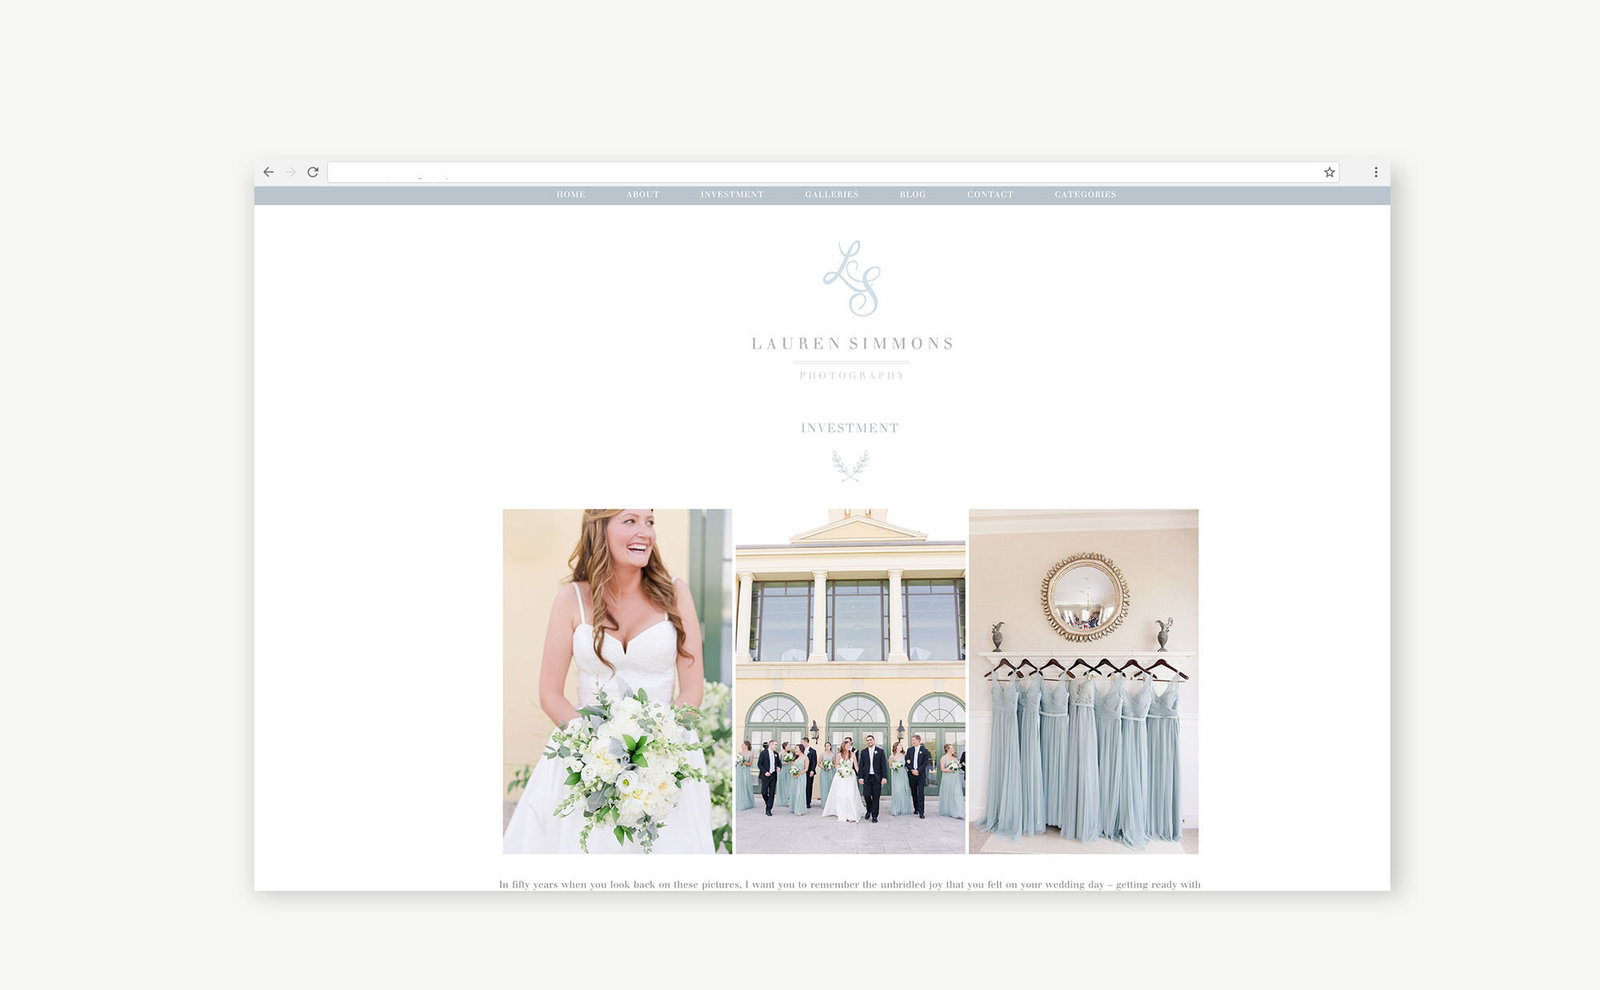 branding-for-photographers-web-design-lauren-simmons-03